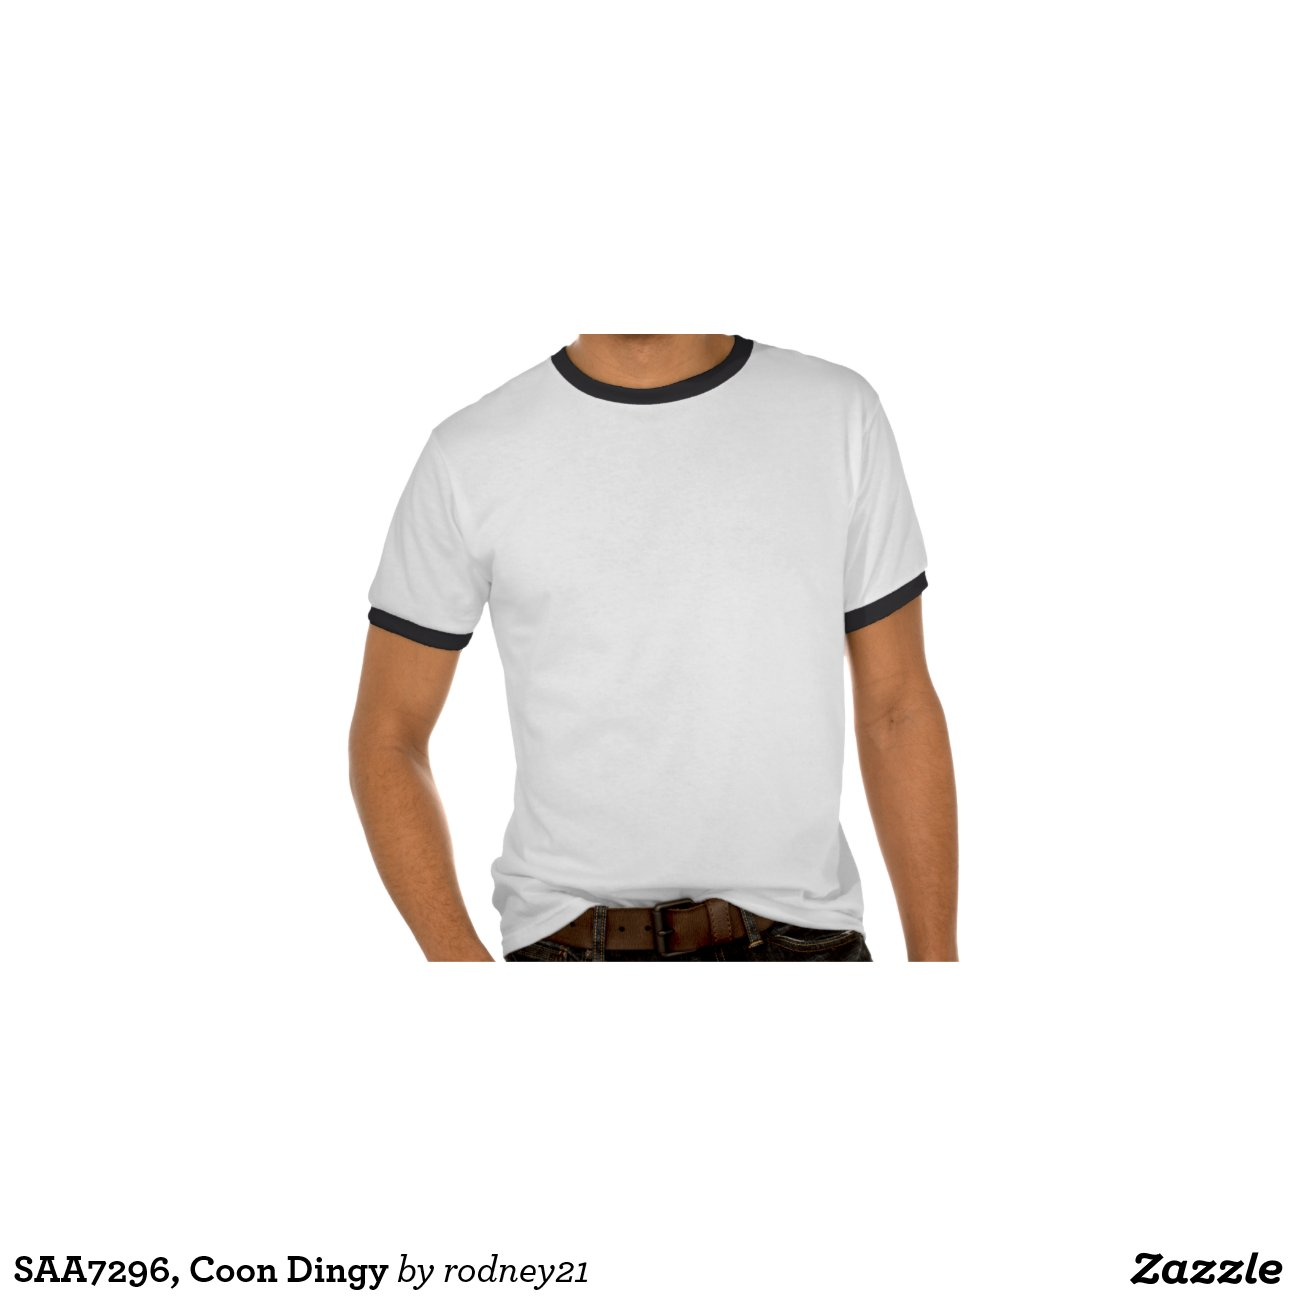 Saa7296 coon dingy shirt zazzle for Dingy white t shirts